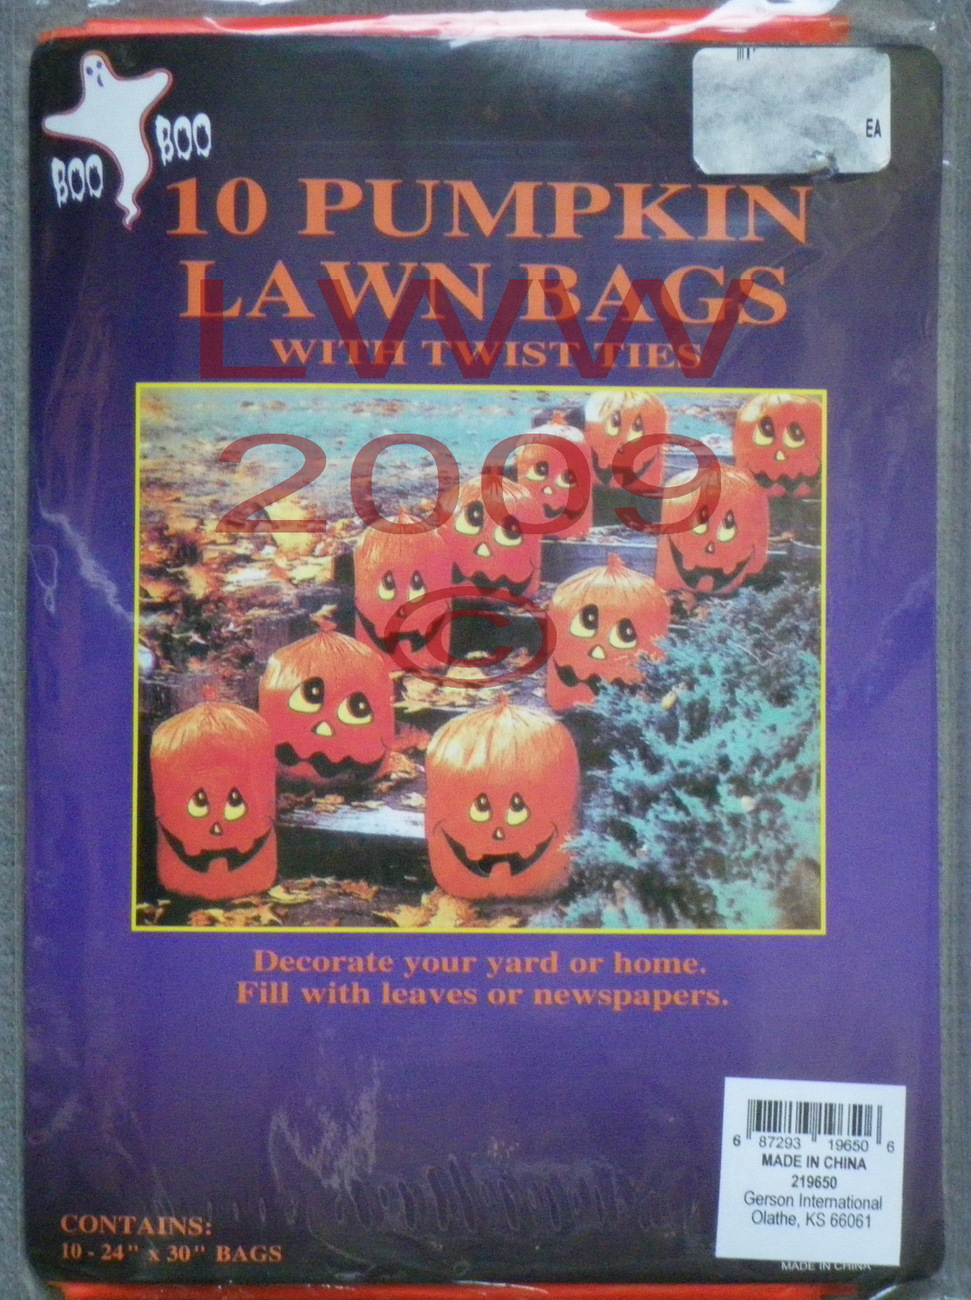 10 Pumpkin Halloween Jack-O-Lantern Leaf Lawn Bags with twist ties